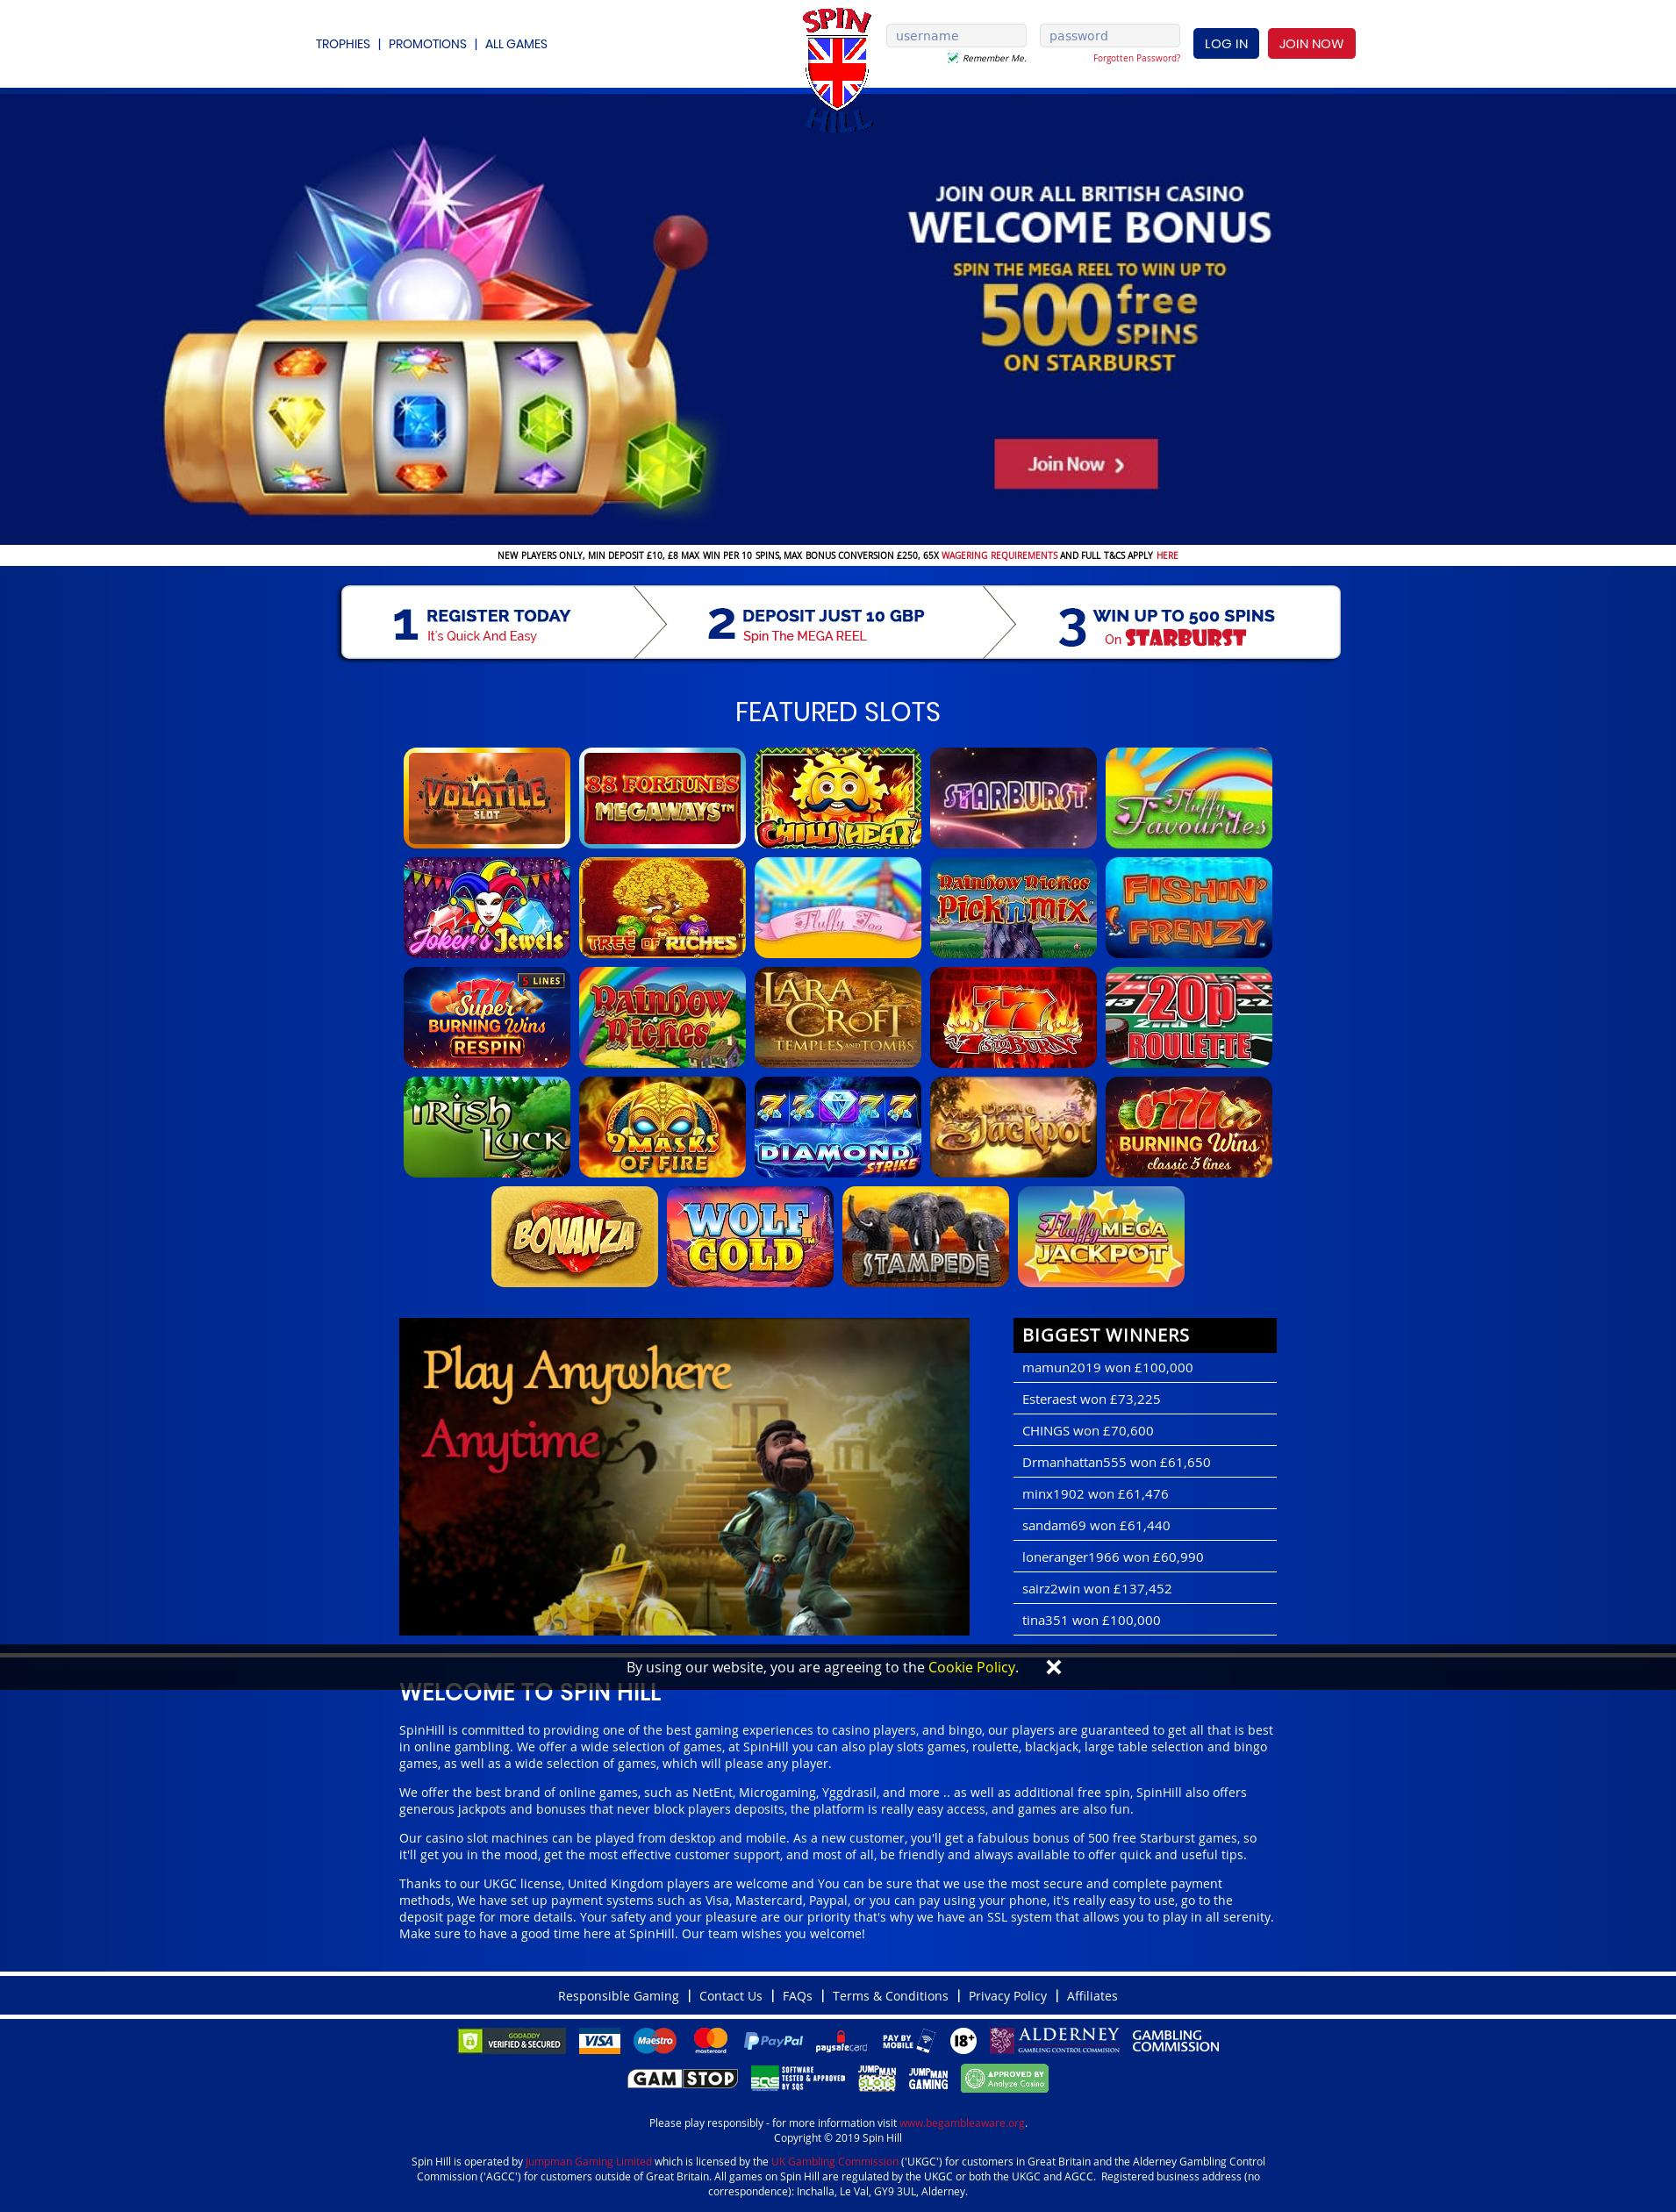 Casino screen Lobby 2019-11-19 for United Kingdom